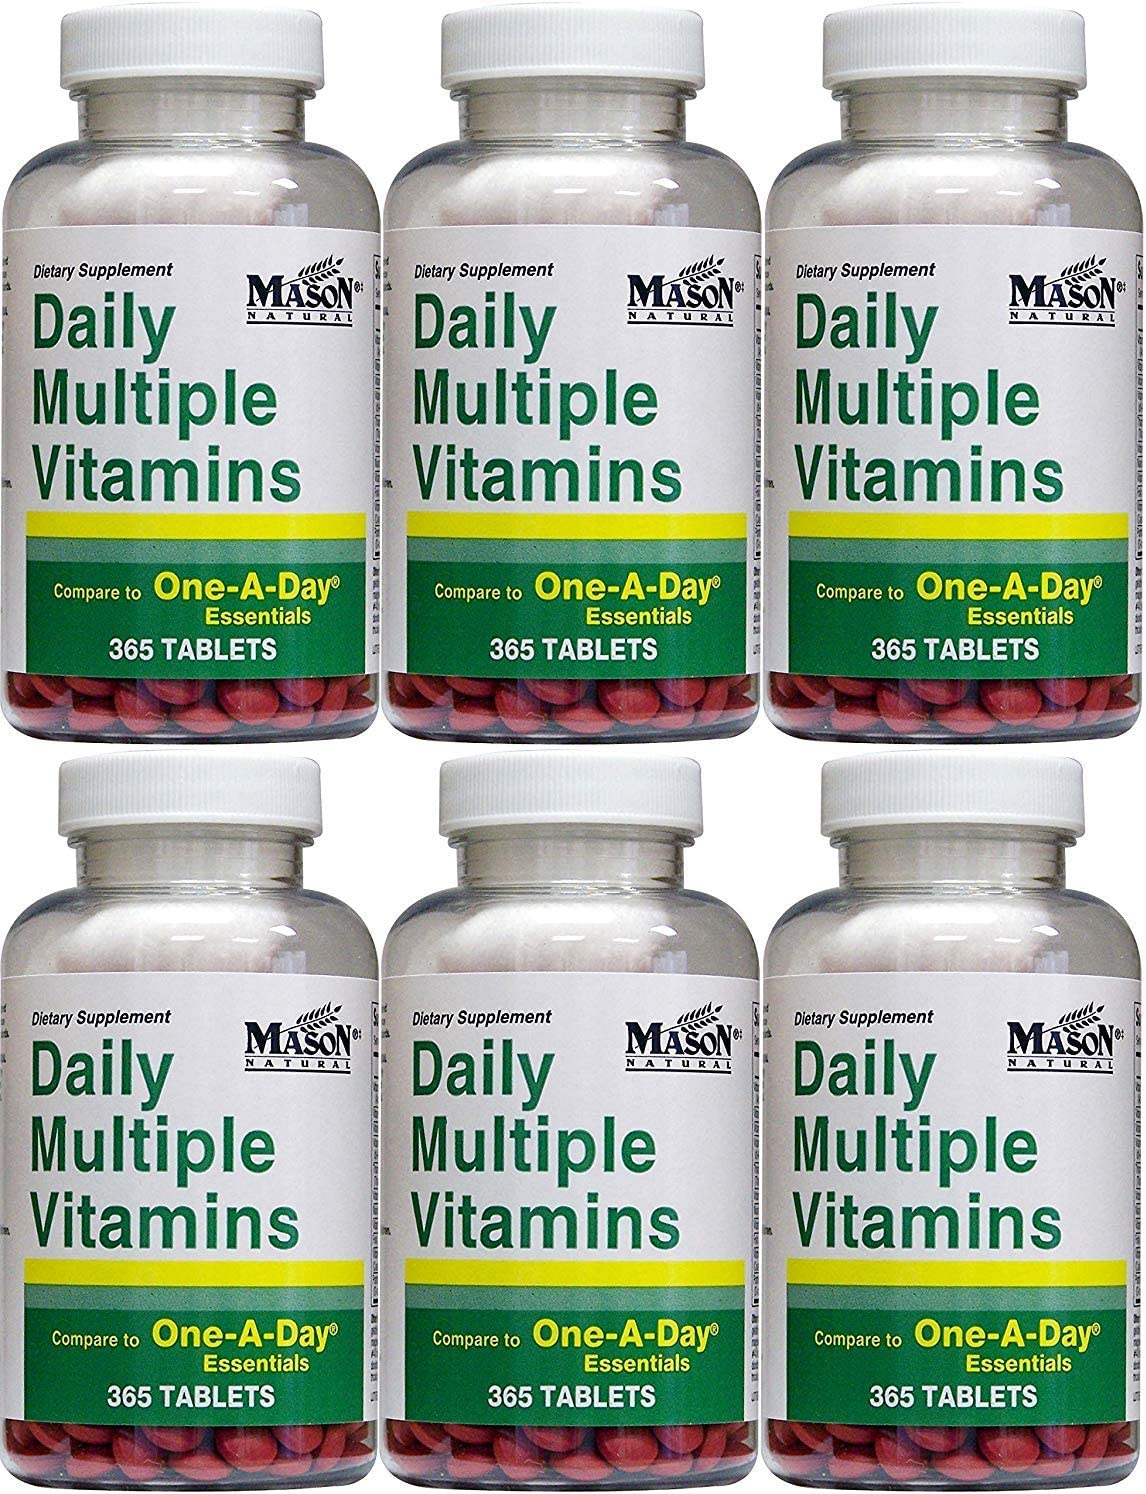 Daily Multiple Vitamins Compare To One A Day Essentials Multivitamin Multimineral Supplement 365 Tablets per Bottle Pack of 6 Total 2190 Tablets